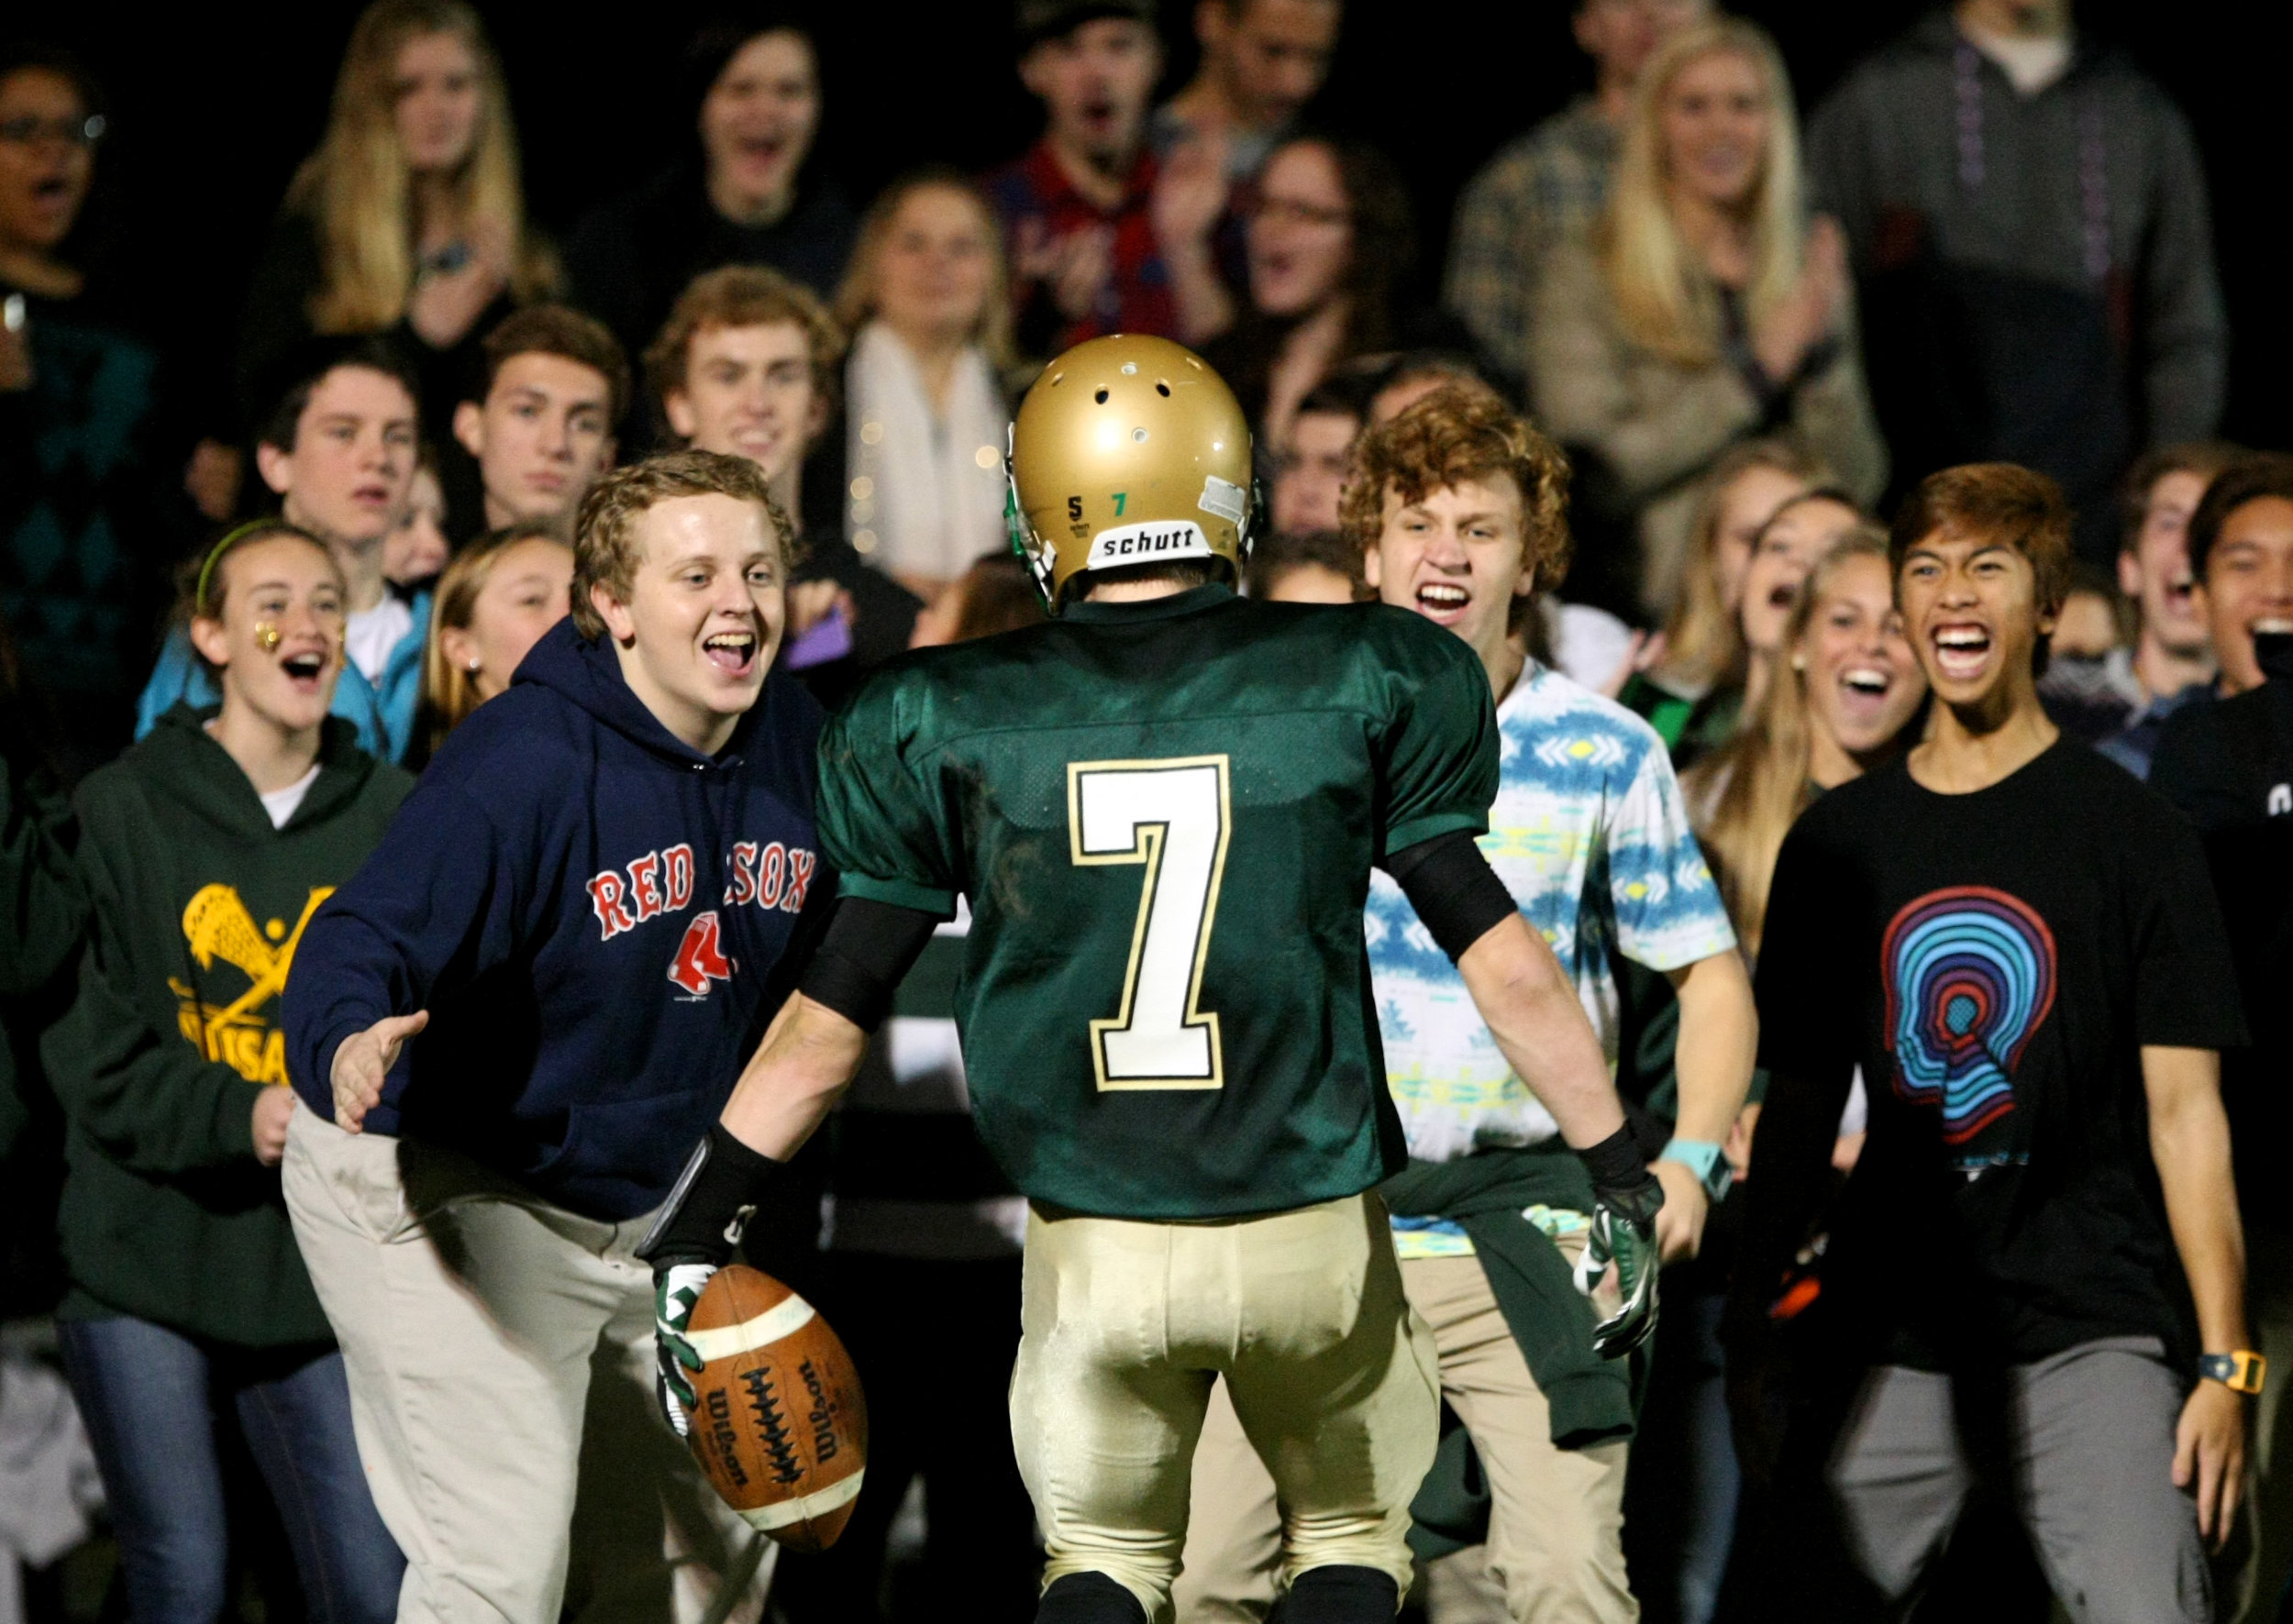 Bishop Sullivan's Liam Korka celebrates with the student section after scoring a second-quarter touchdown while playing Potomac School in the VISAA Division II state championship game, Saturday, Nov. 16, 2013 at Bishop Sullivan Catholic School in Virginia Beach. Bishop Sullivan won 50-44.